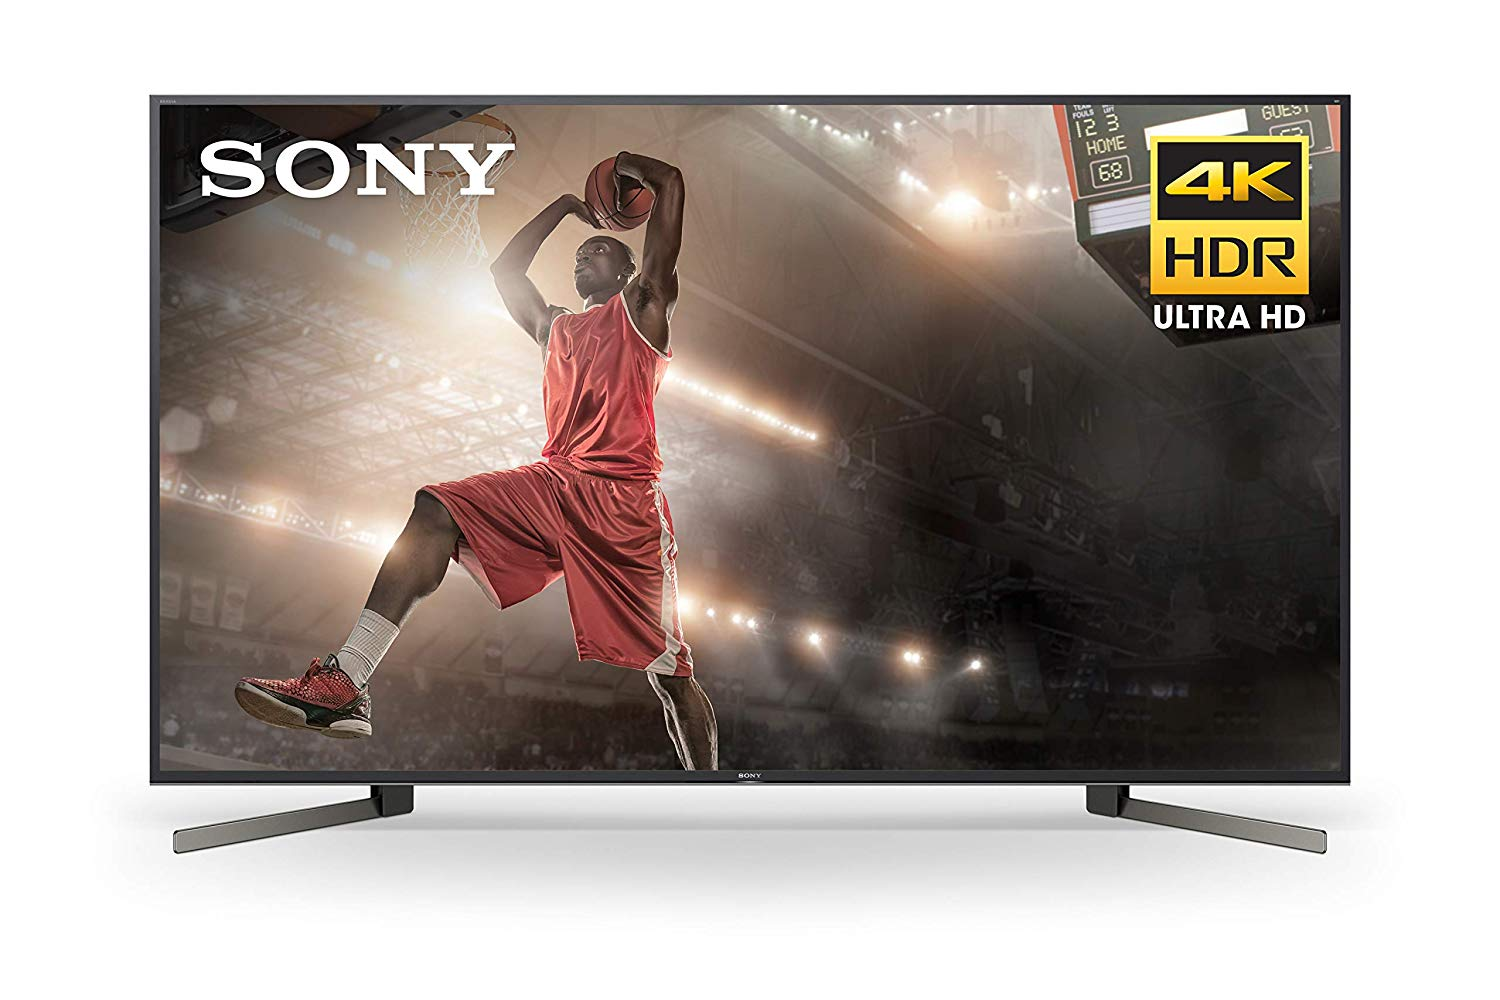 Sony 85 Inch TV: 4K Ultra HD Smart LED TV with HDR and Alexa